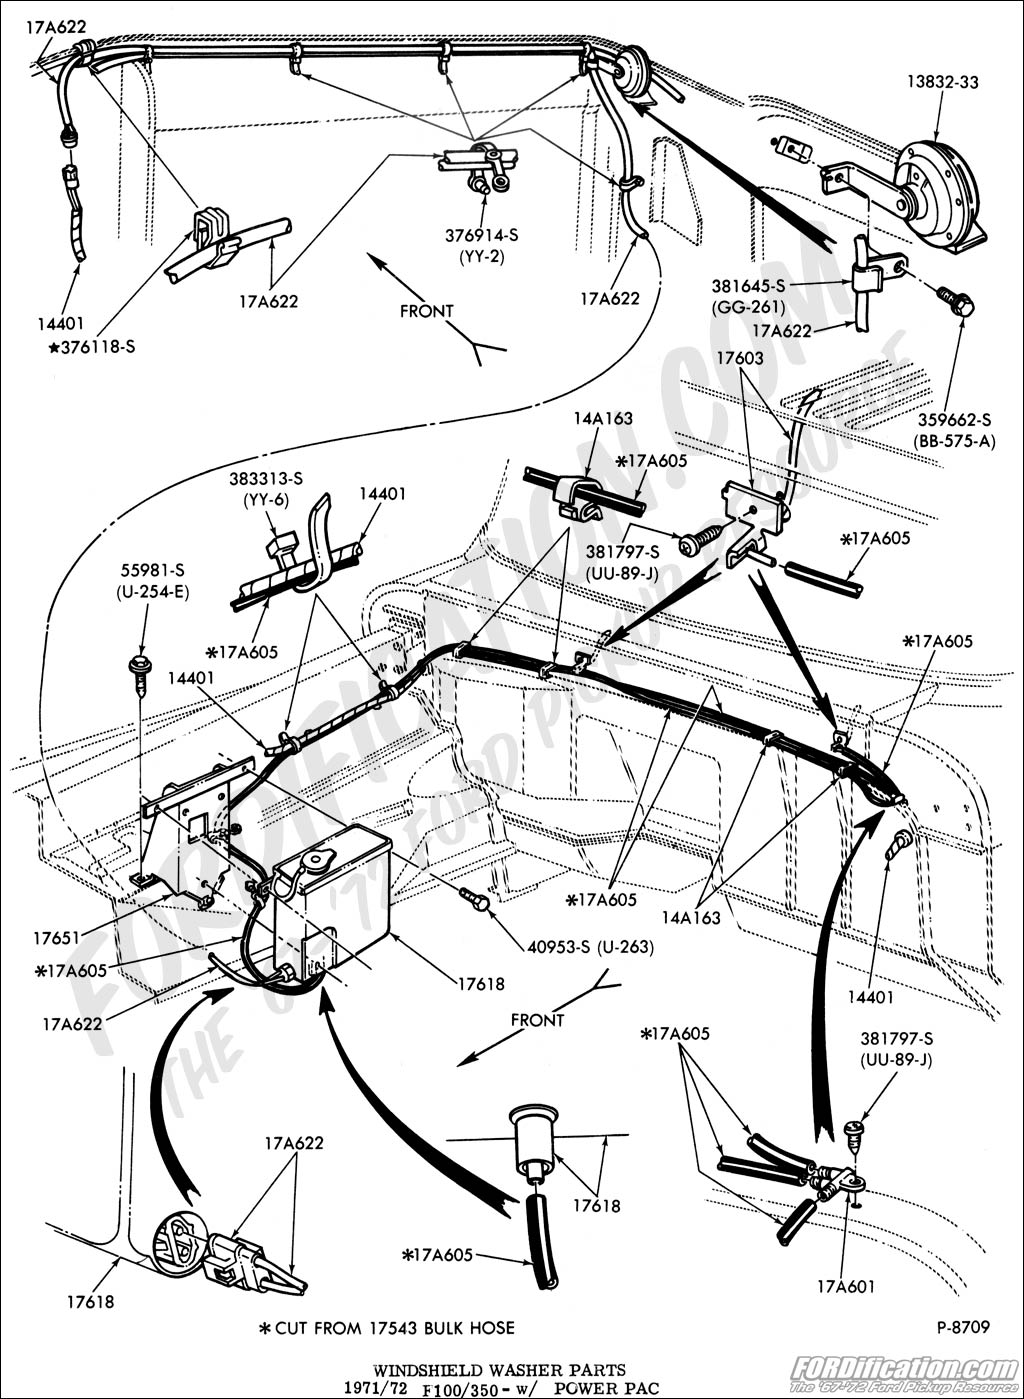 Windshieldwshr Pwrpak on 1972 Ford F100 Wiring Diagram